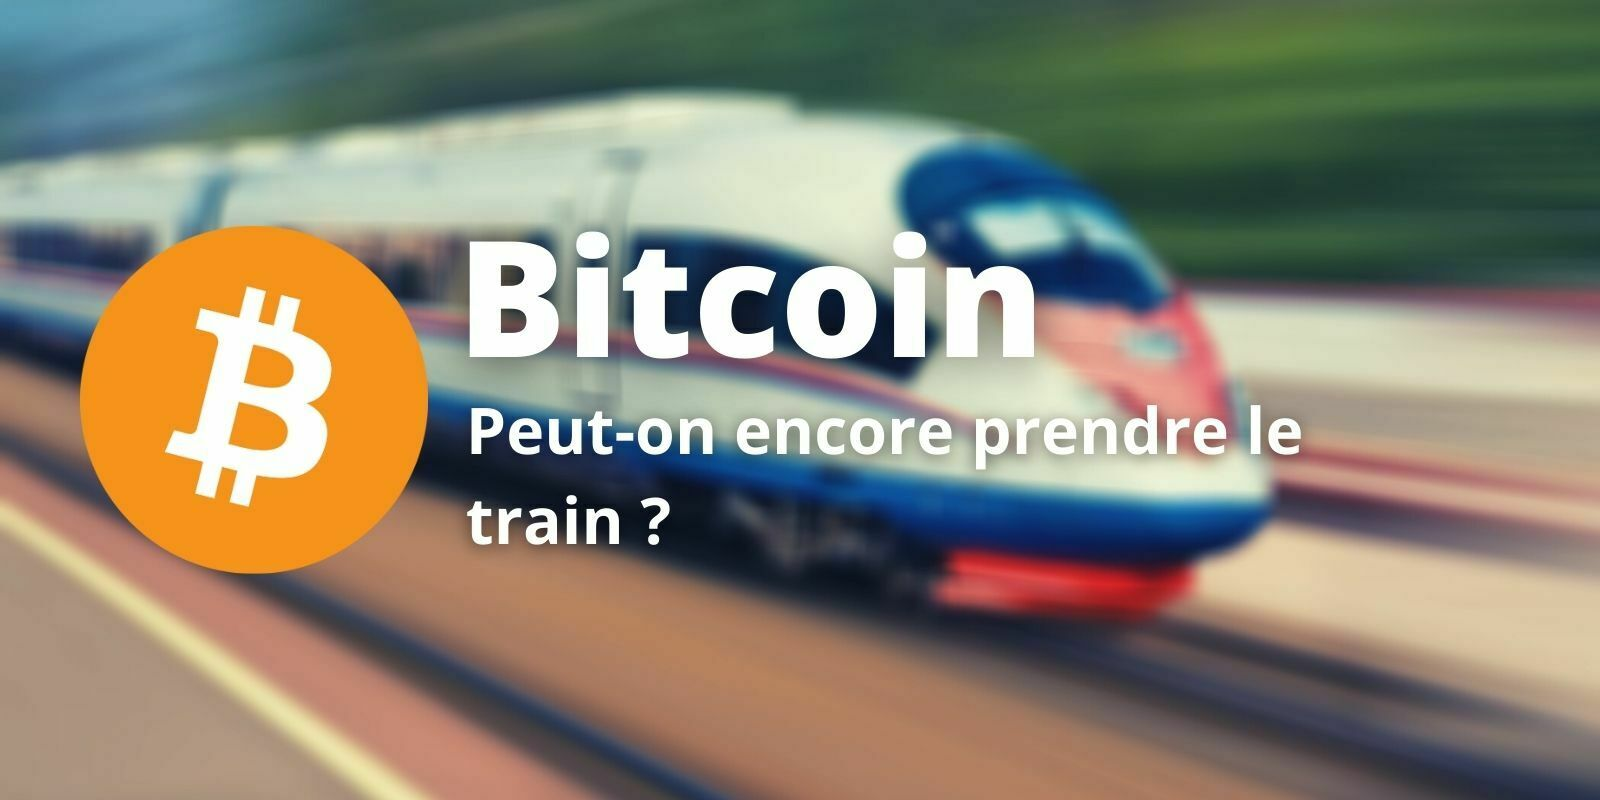 Bitcoin (BTC) - Peut-on encore prendre le train en marche ?